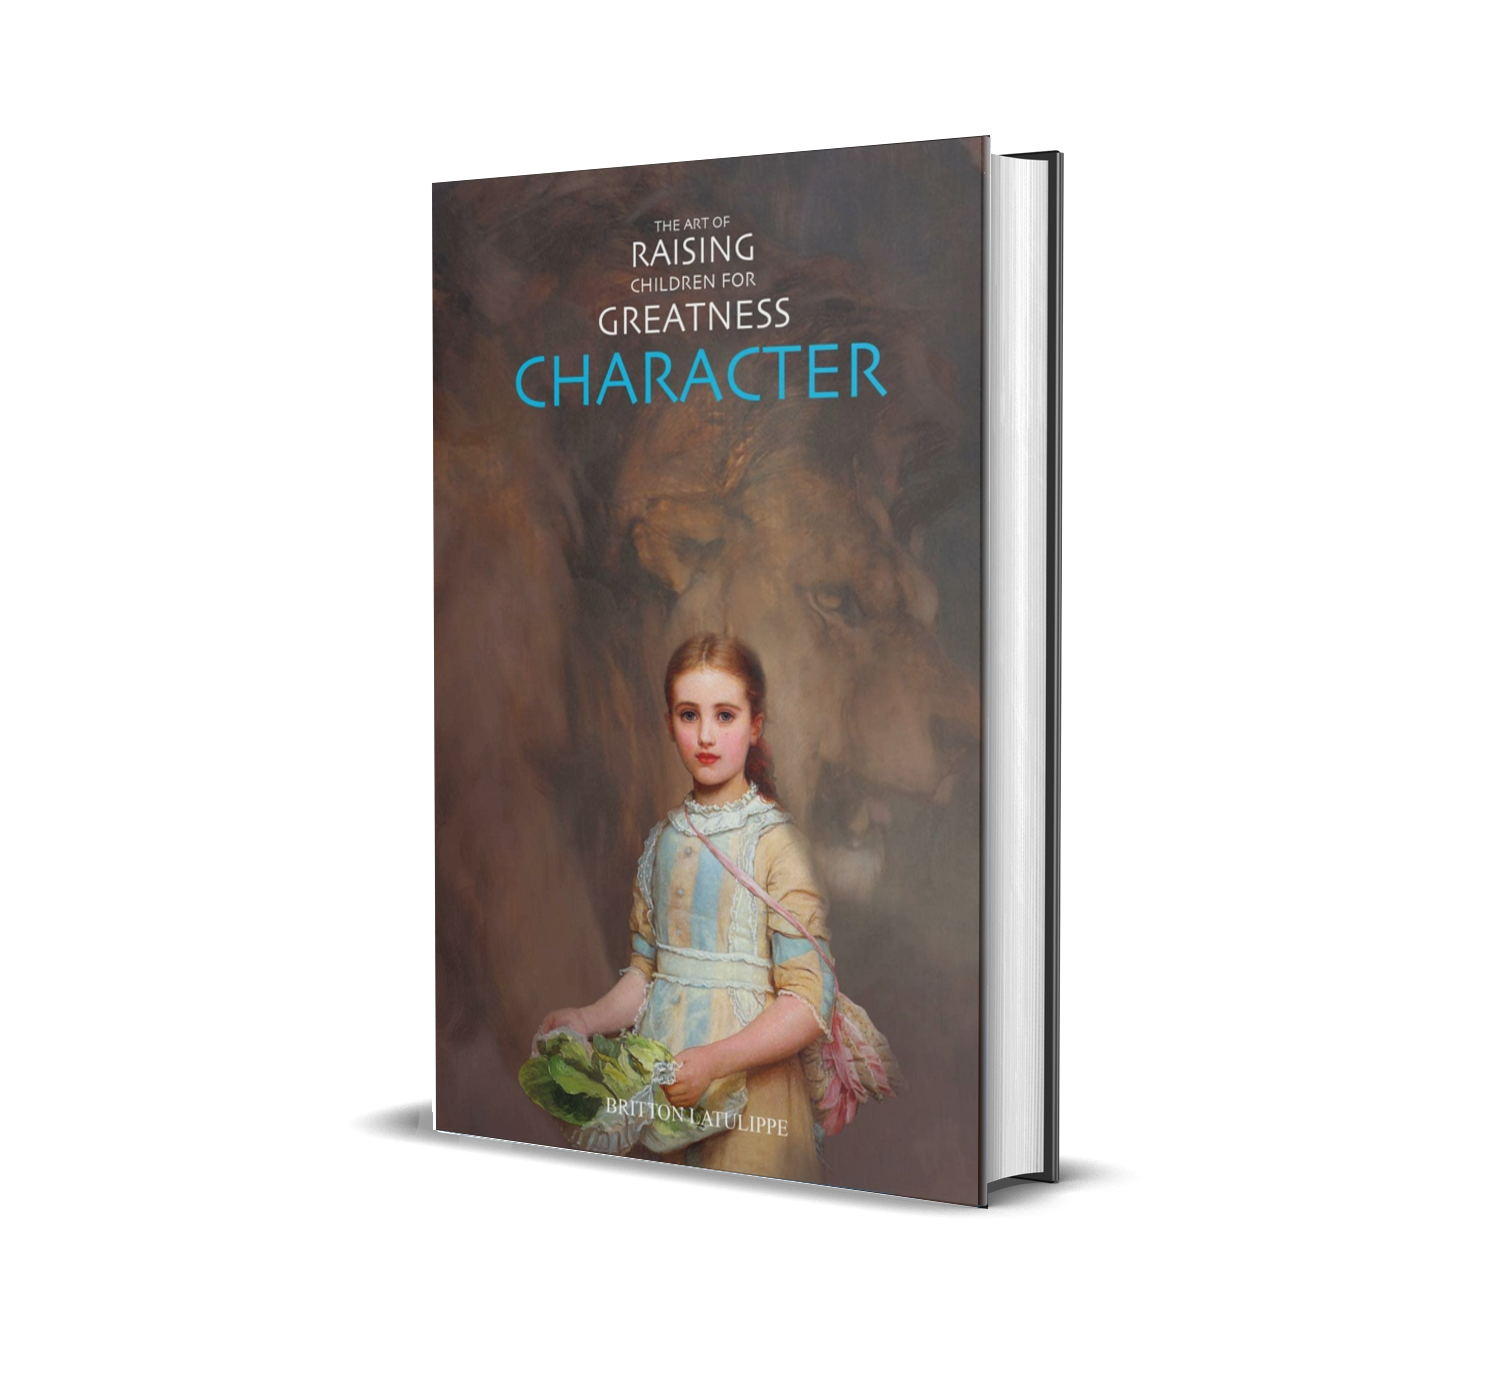 The Art of Raising Children for Greatness - Character Book Cover